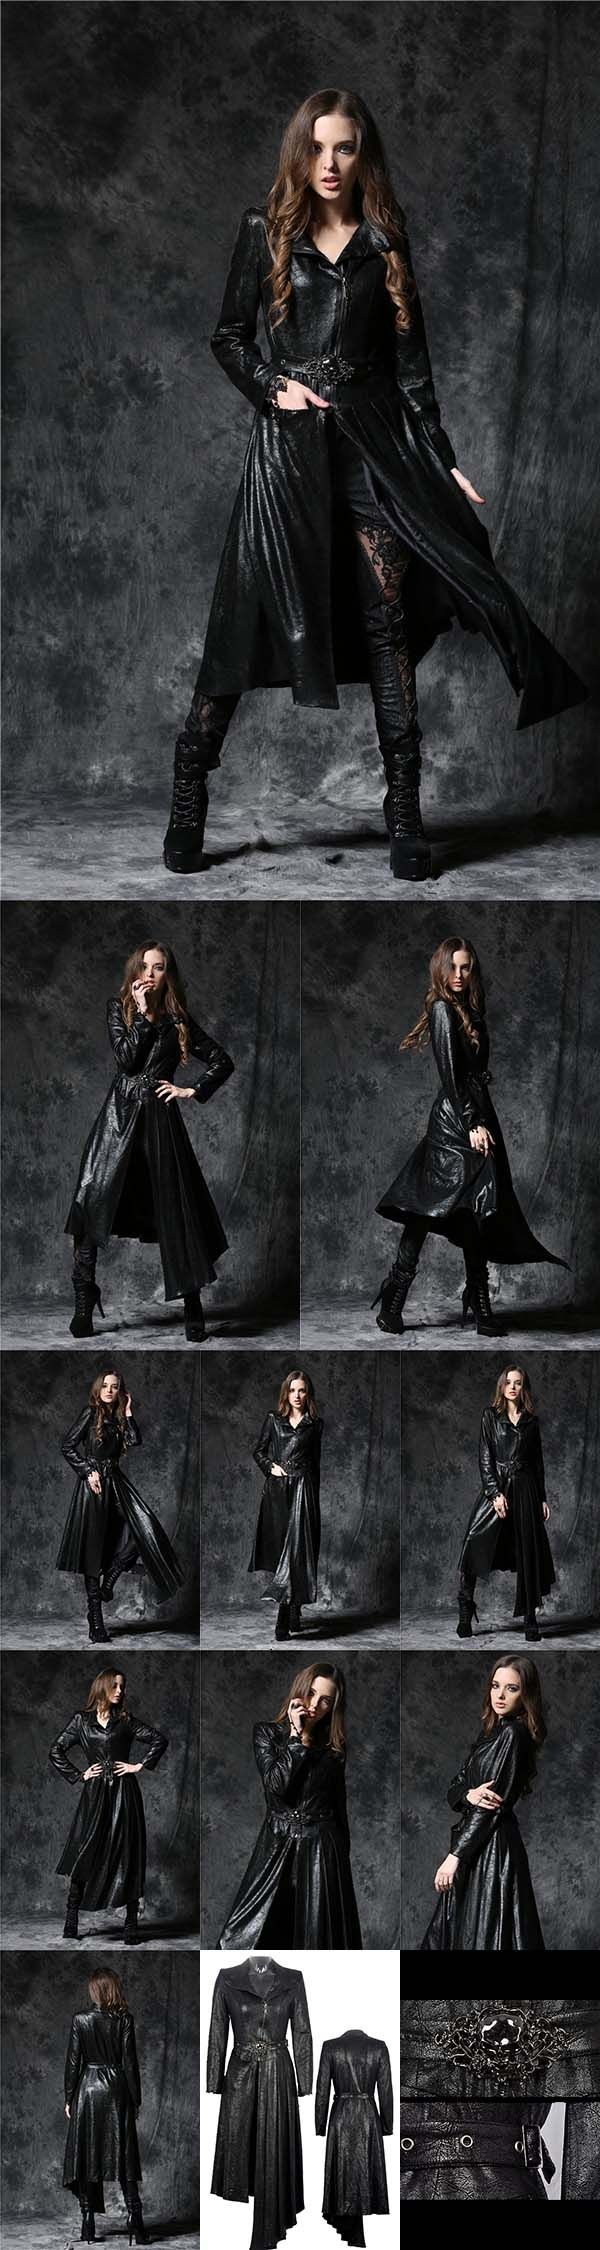 Dark In Love Gothique Asymmetric Ladies Gothic Coat with Ghost Belt - This is a stunning black ladies gothic jacket has an asymmetric cut with one side longer that the other at the front. There is a zip front fastening and buckle belt at the waist with an eyecatching ghost skull detail. From ANGEL CLOTHING https://www.angelclothing.co.uk